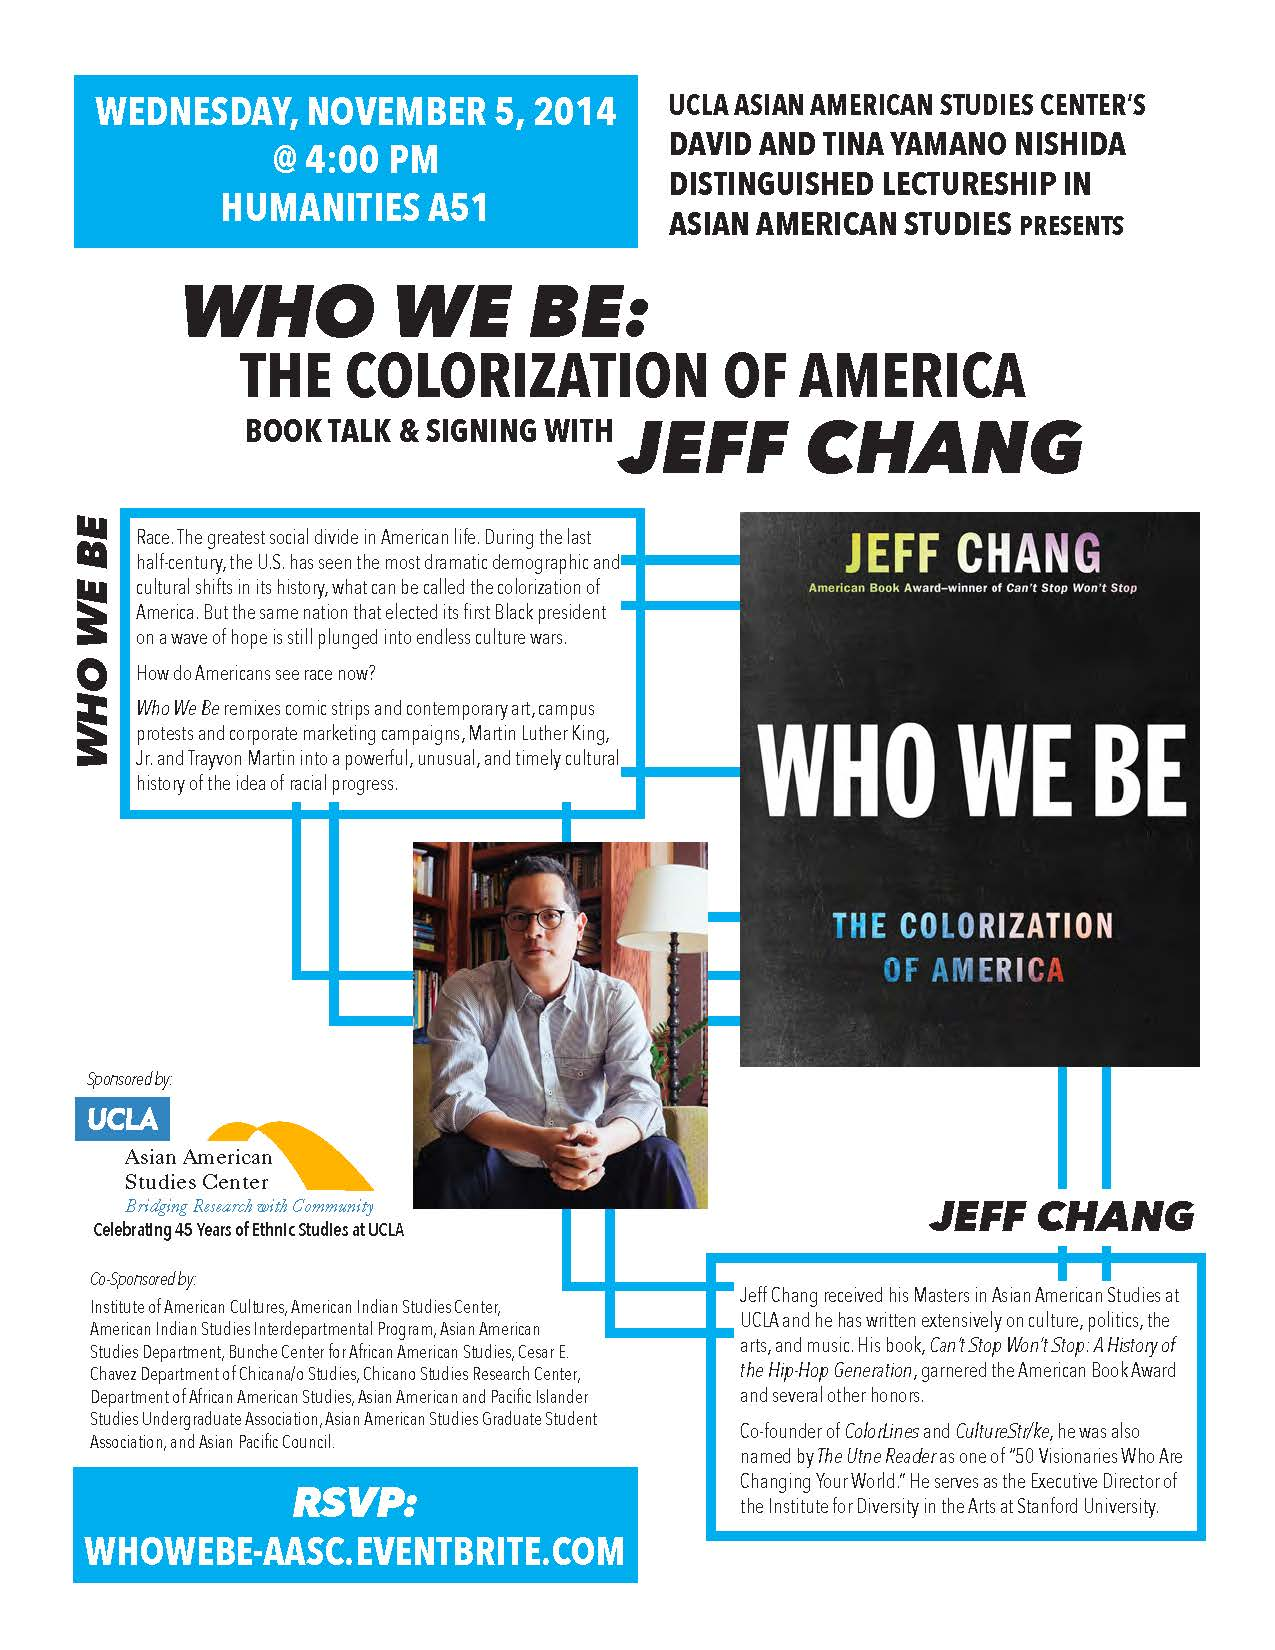 jeffchangflyerfinal-color